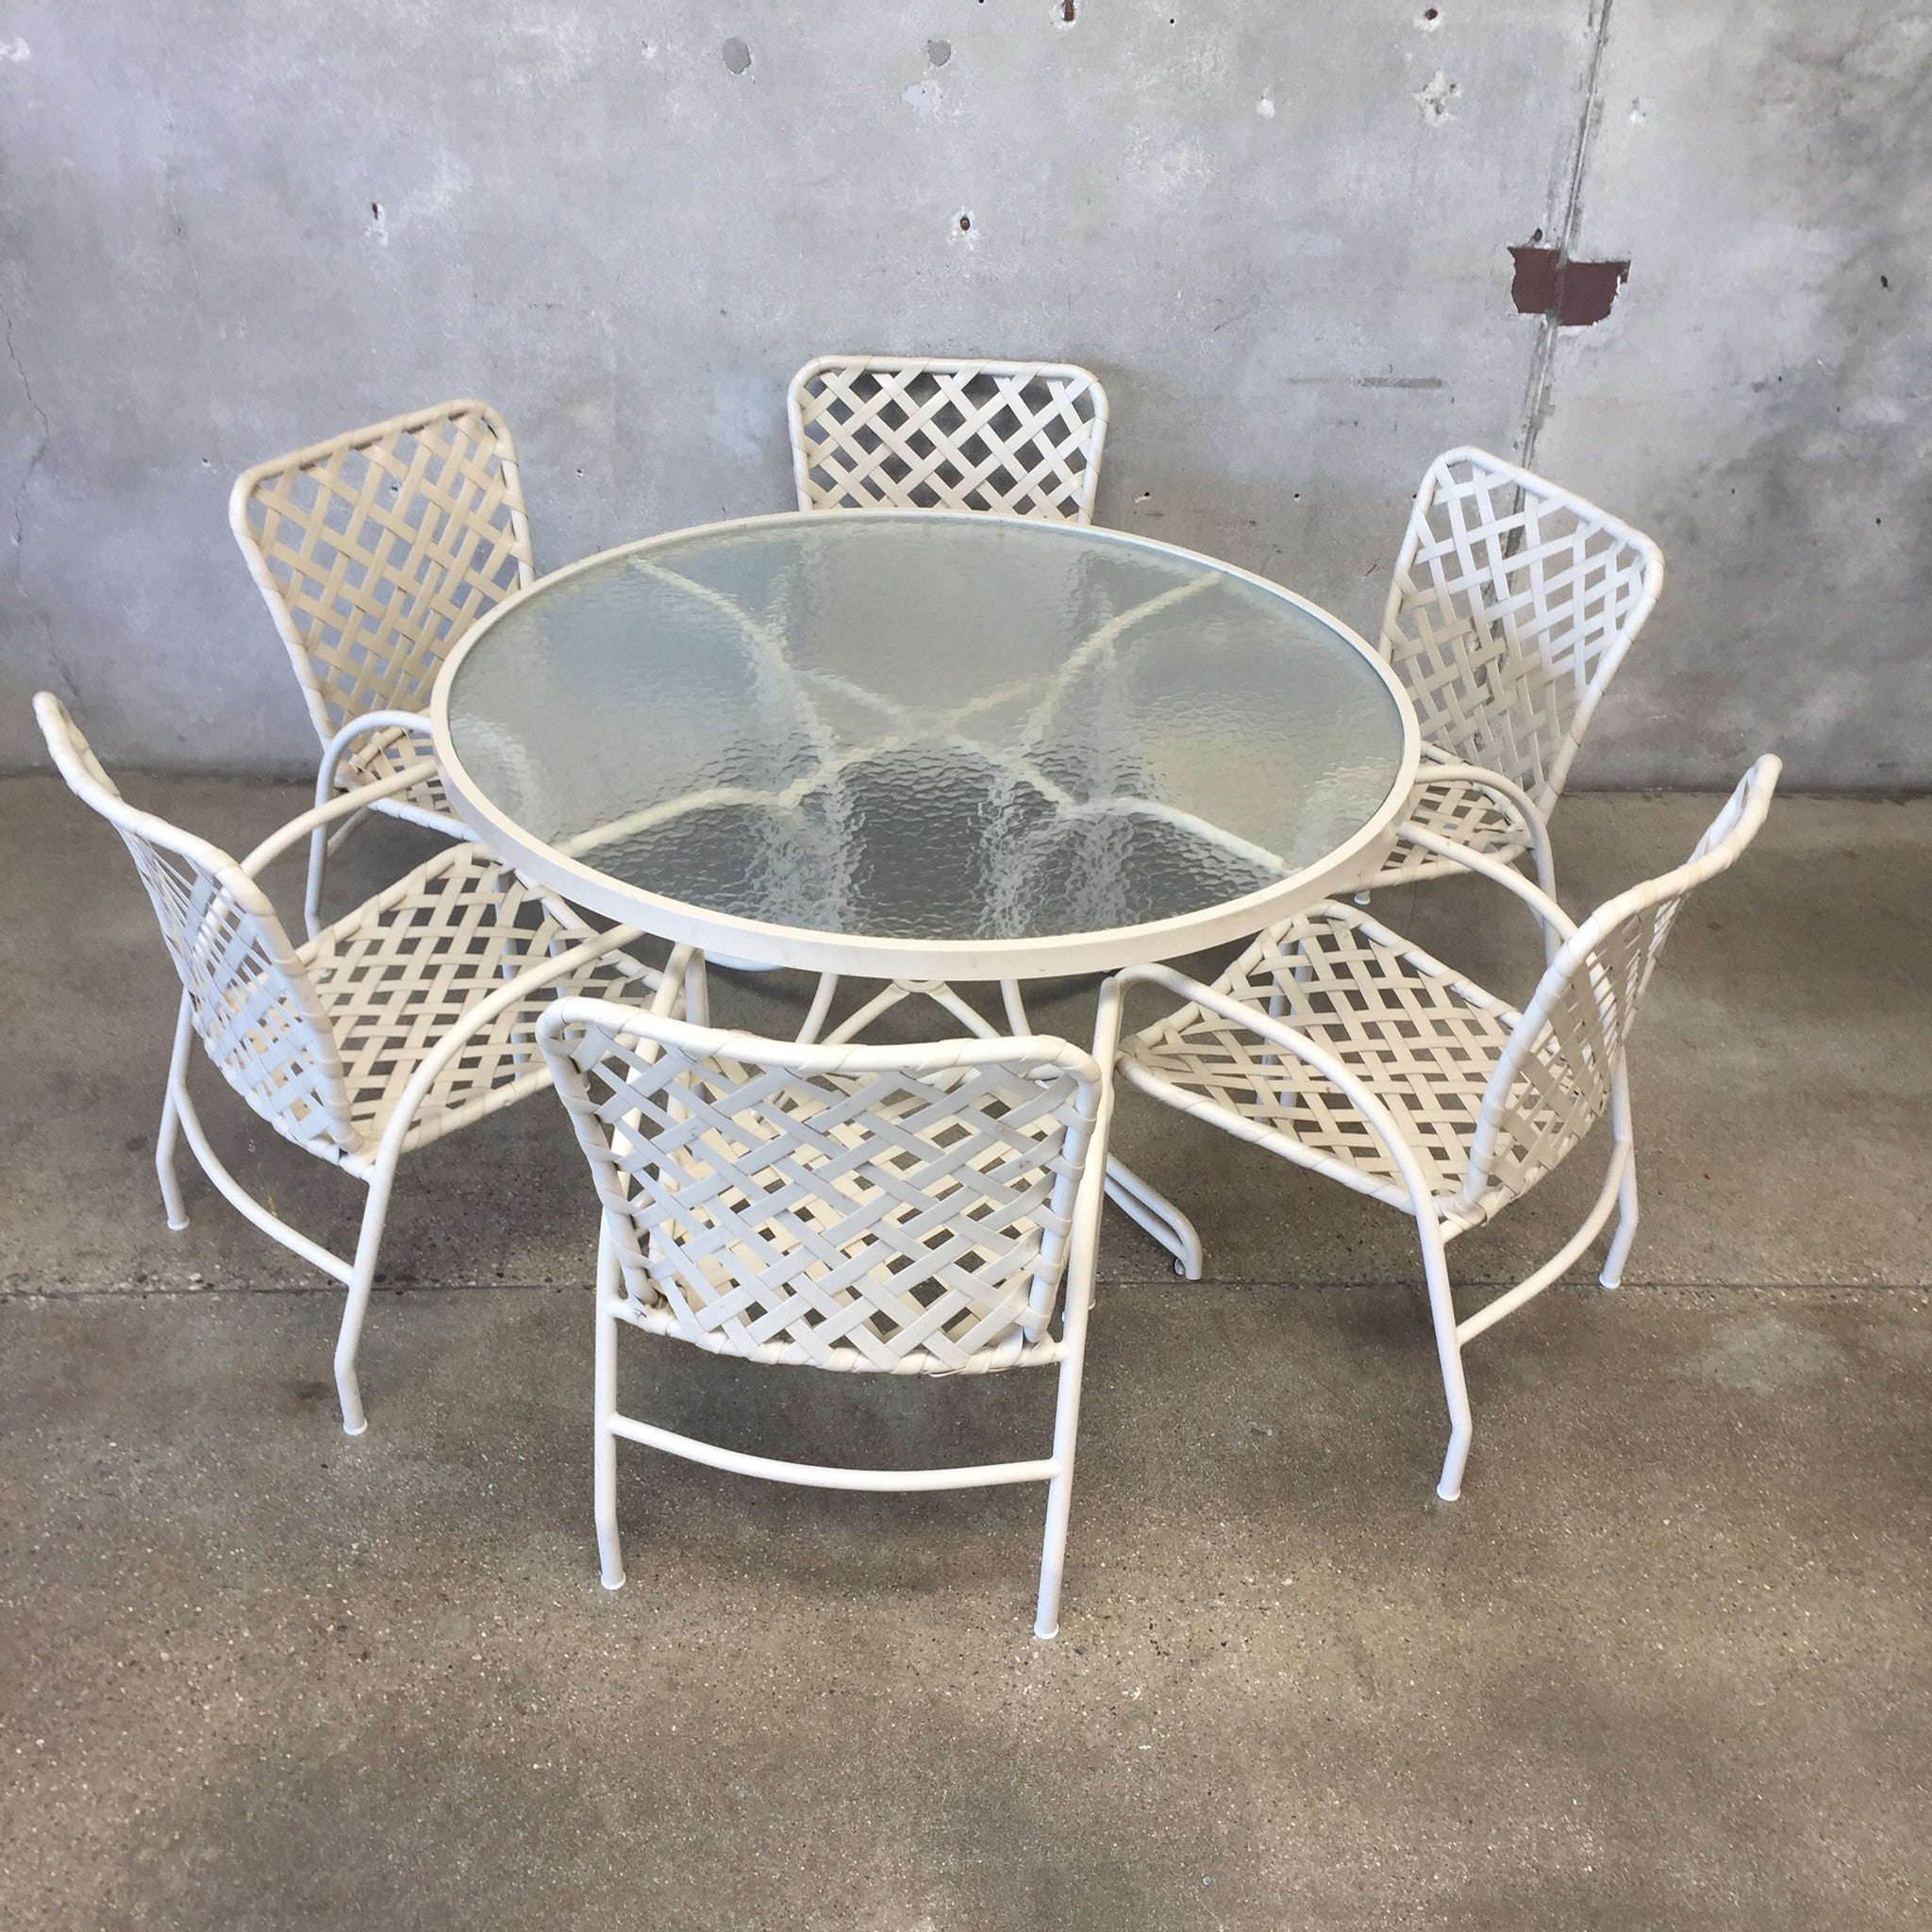 Vintage Brown Jordan Patio Dining Set Vintage Brown Jordan Patio Dining Set  ...